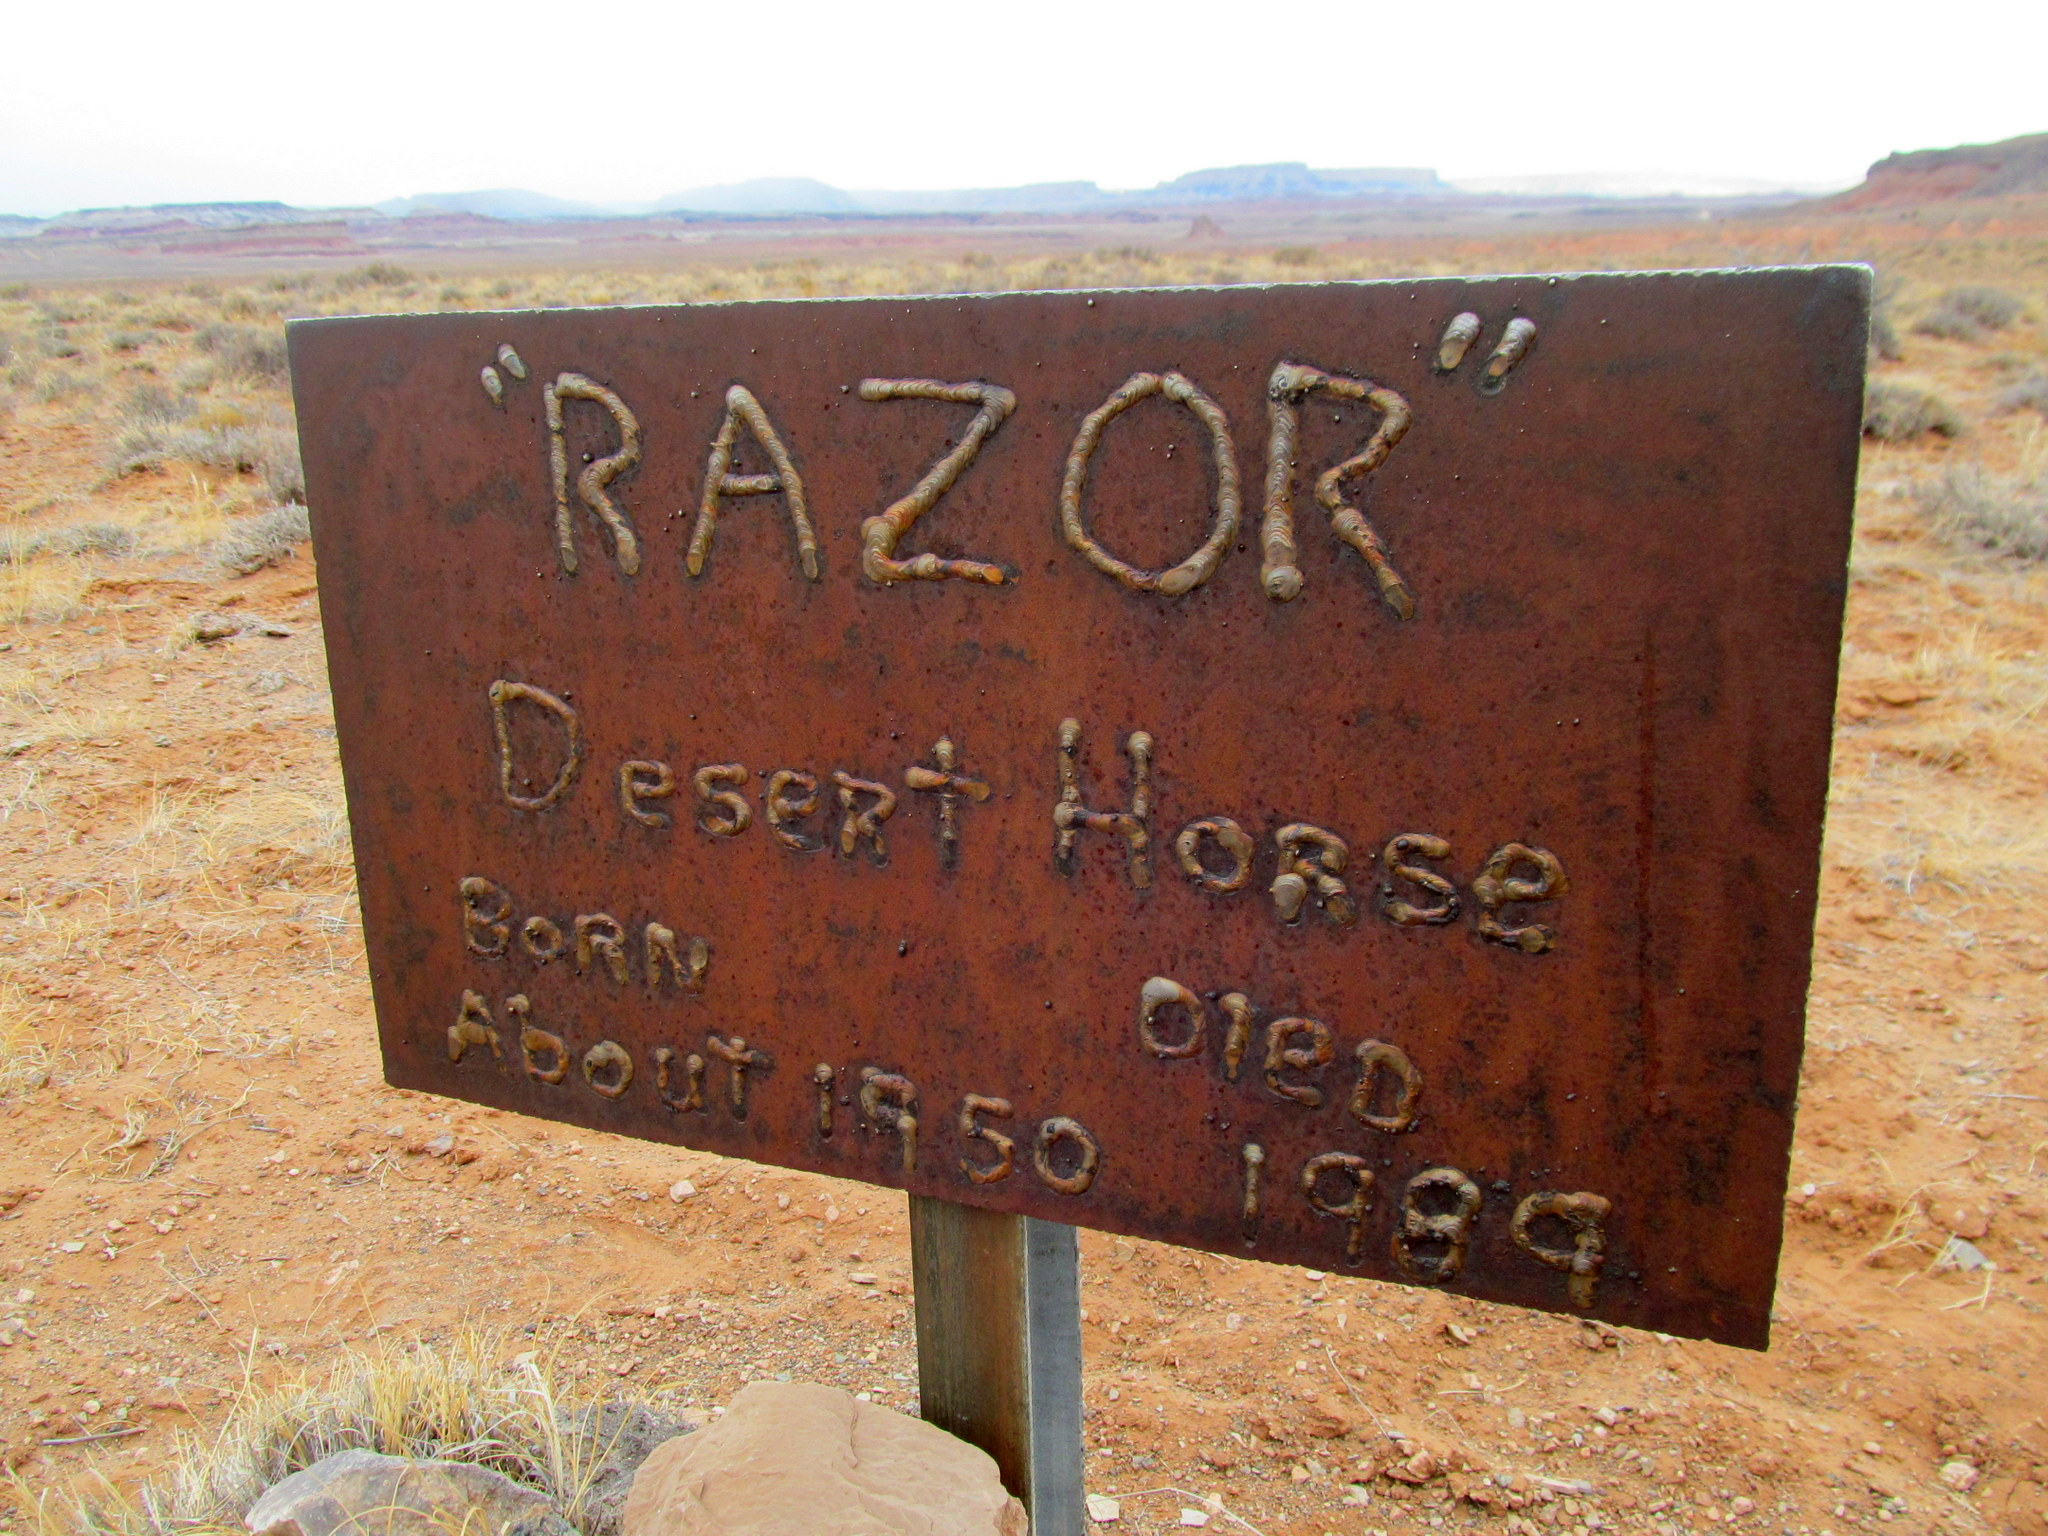 Photo: Razor the desert horse, born about 1950, died 1989